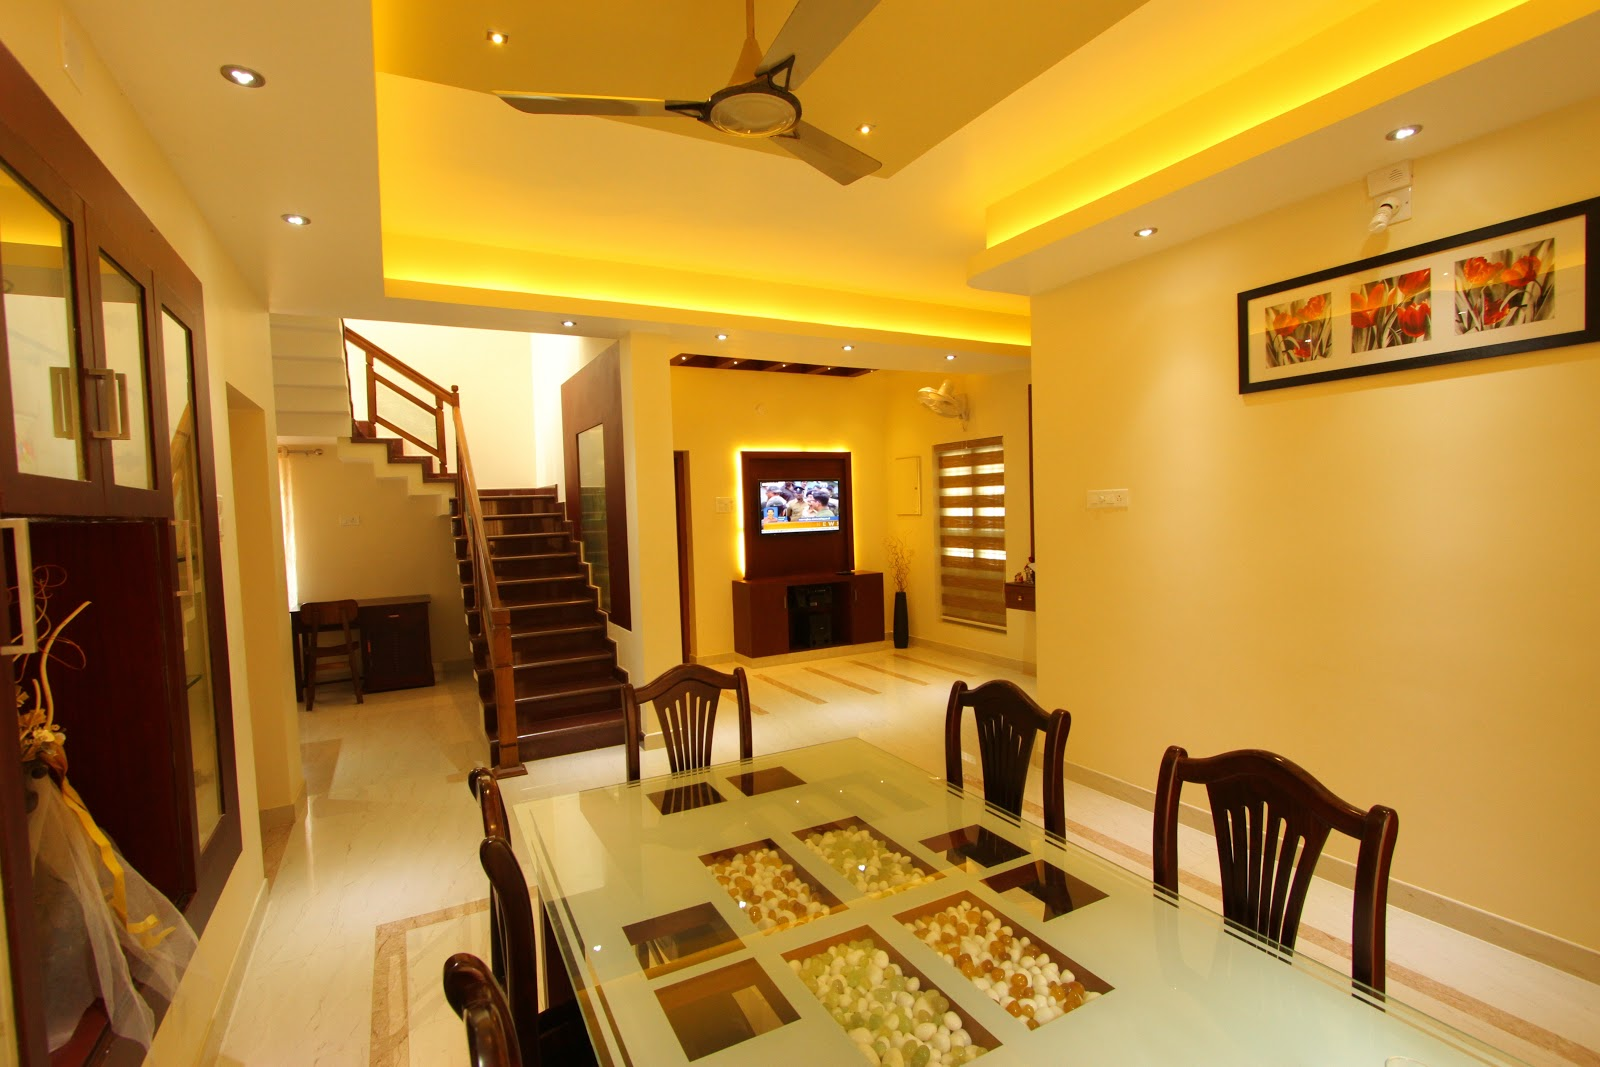 Shilpakala interiors award winning home interior design for Interior designer